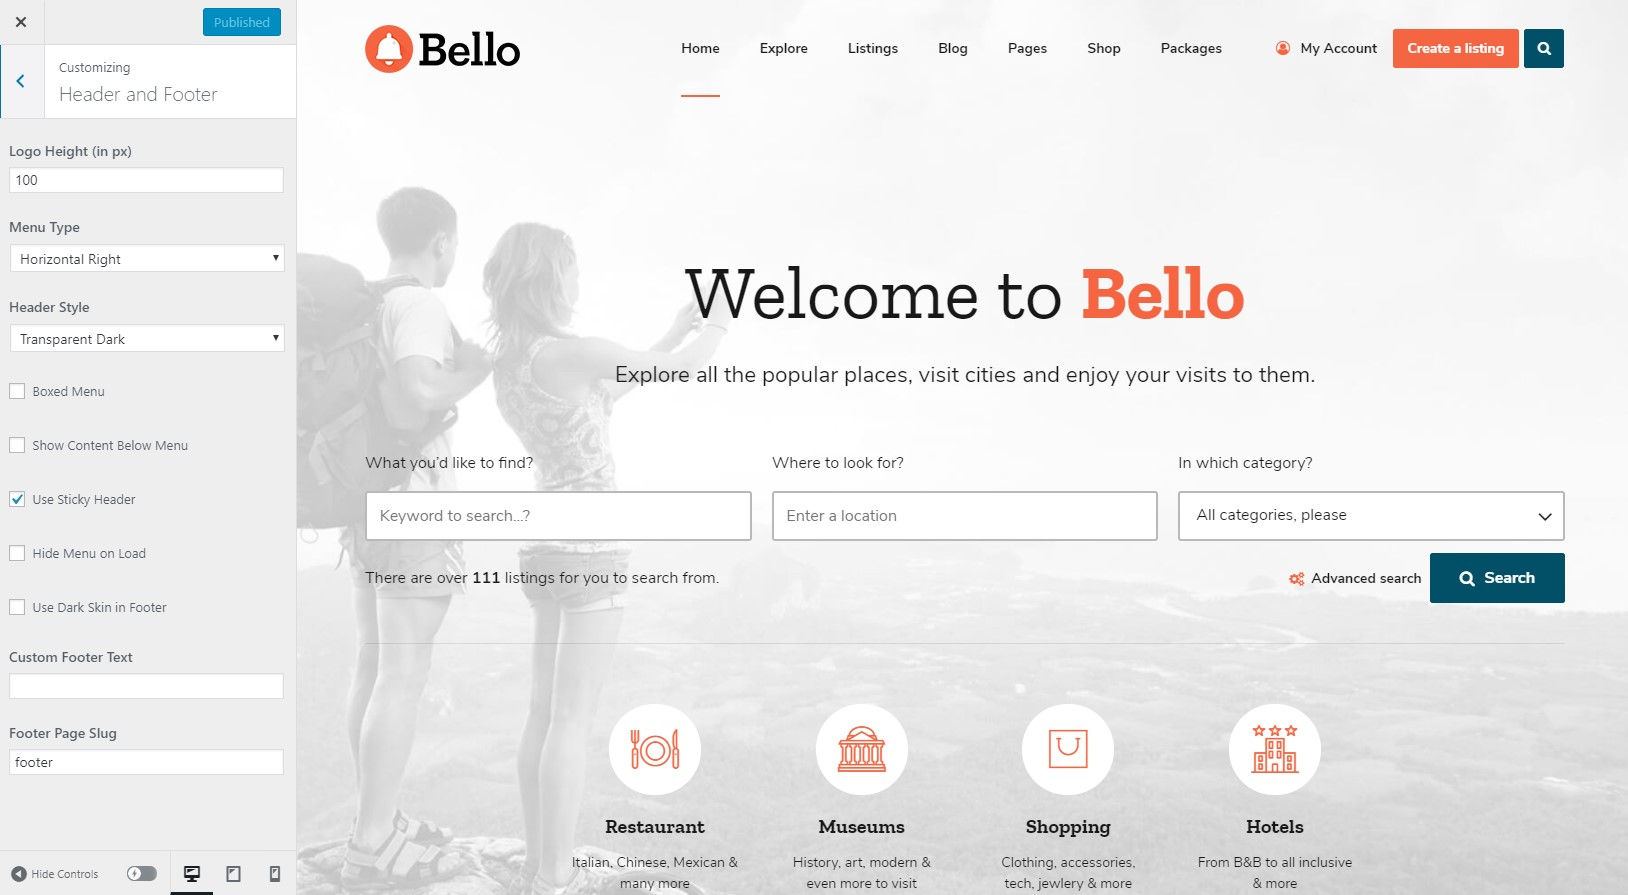 https://documentation.bold-themes.com/bello/wp-content/uploads/sites/31/2018/03/header-and-footer.jpg